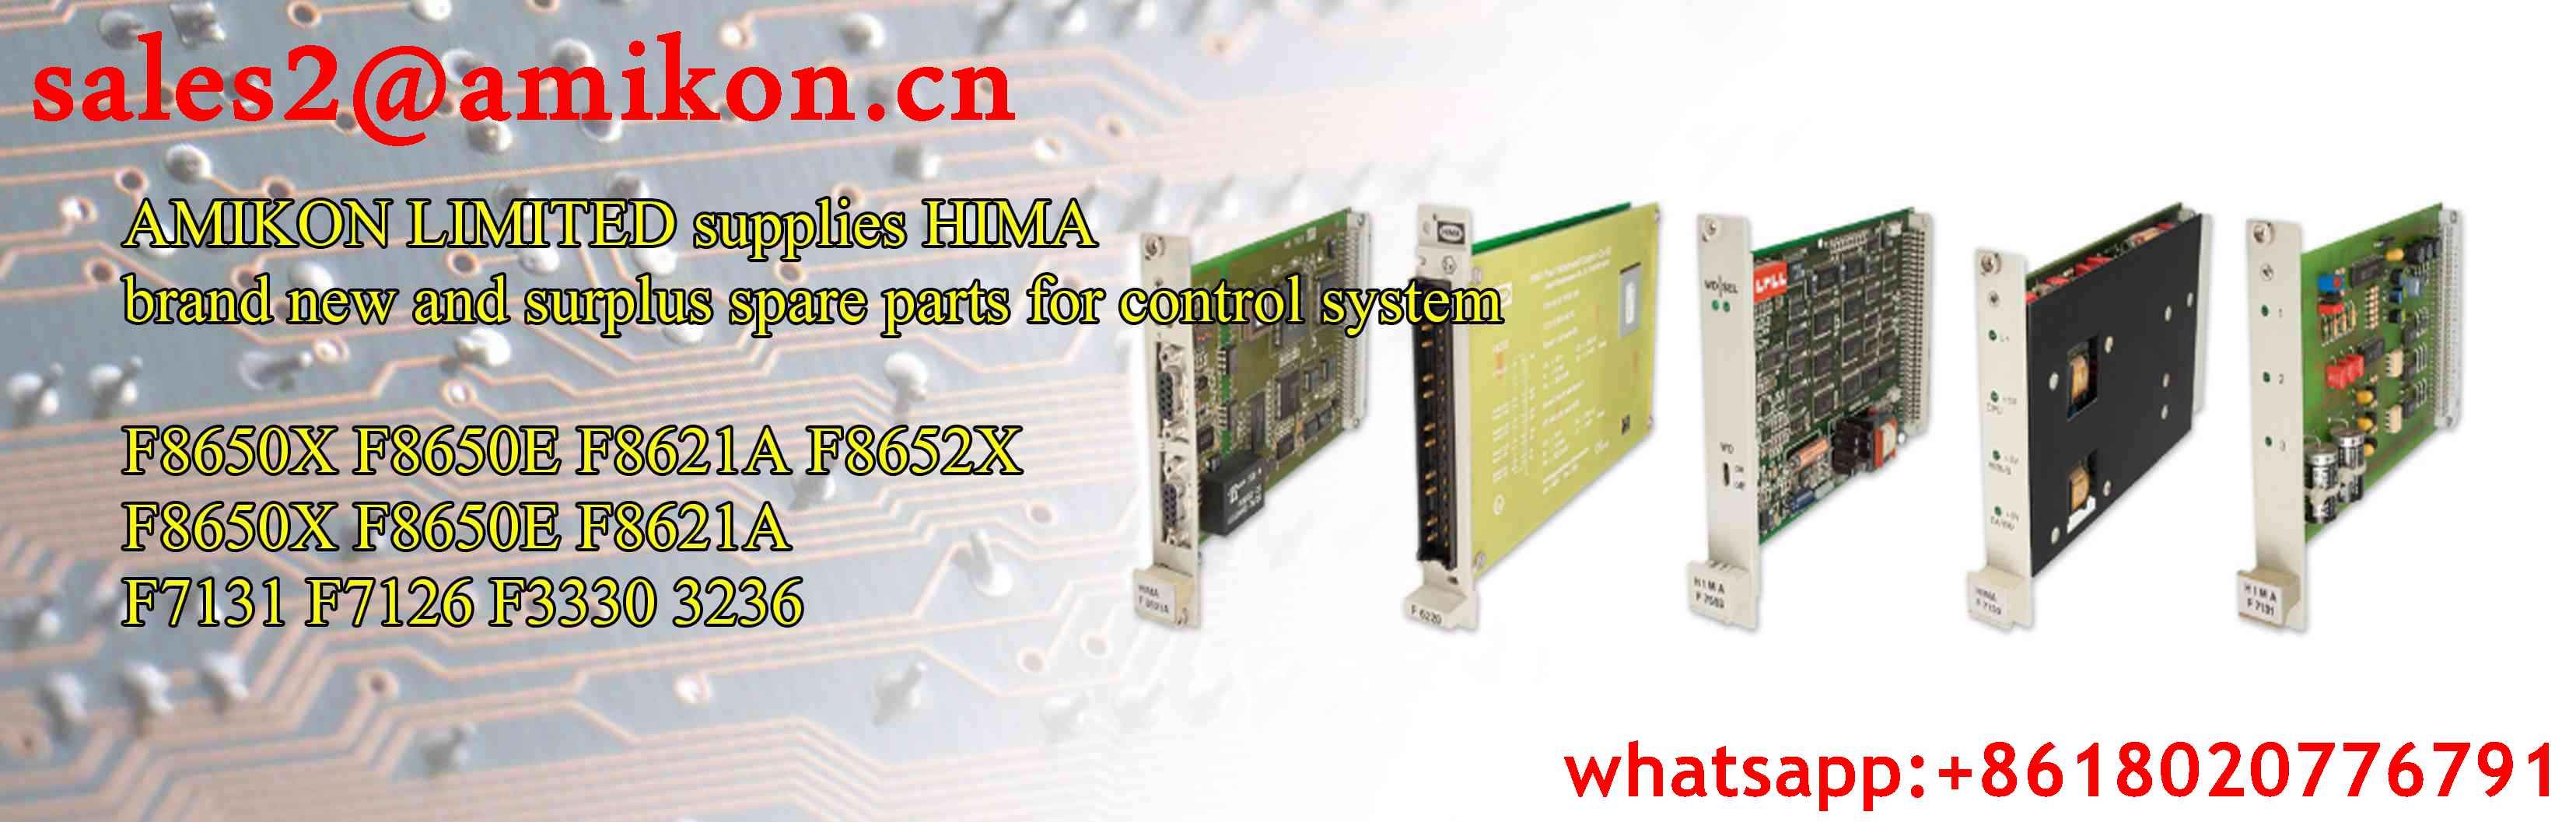 New Ic698cre020 Ge In Stock Great Price Discount